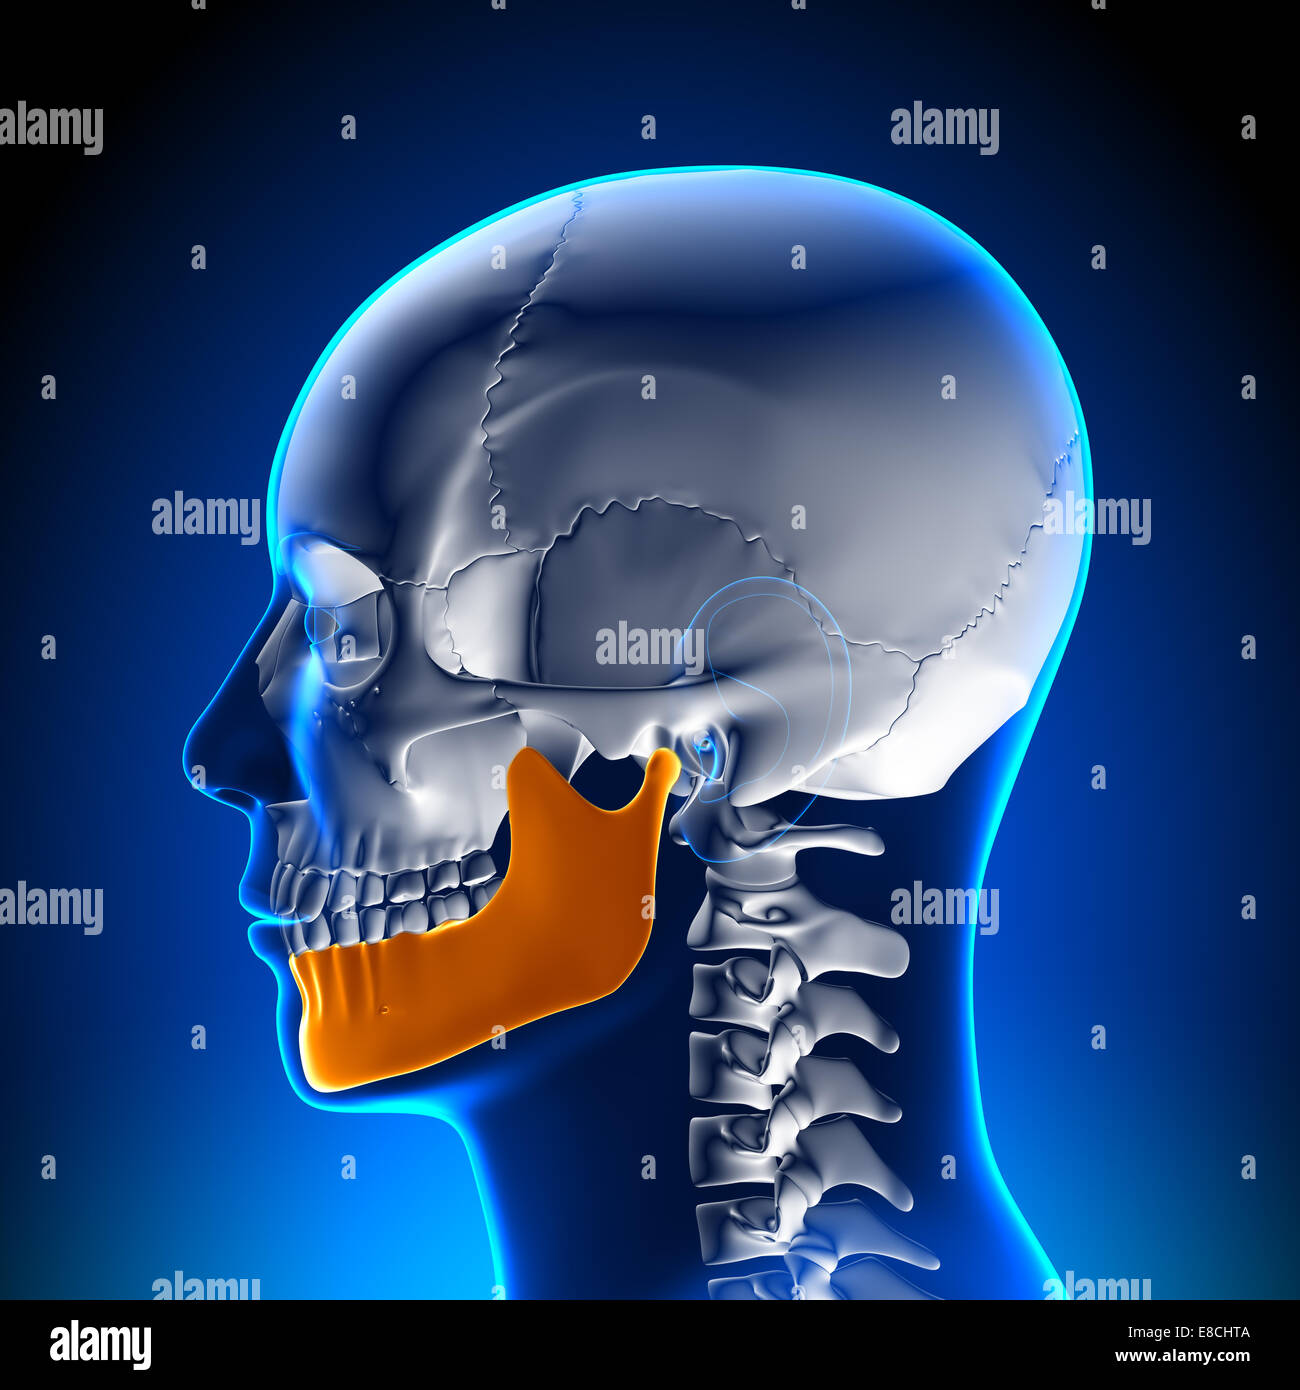 Mandible Human Stock Photos & Mandible Human Stock Images - Alamy